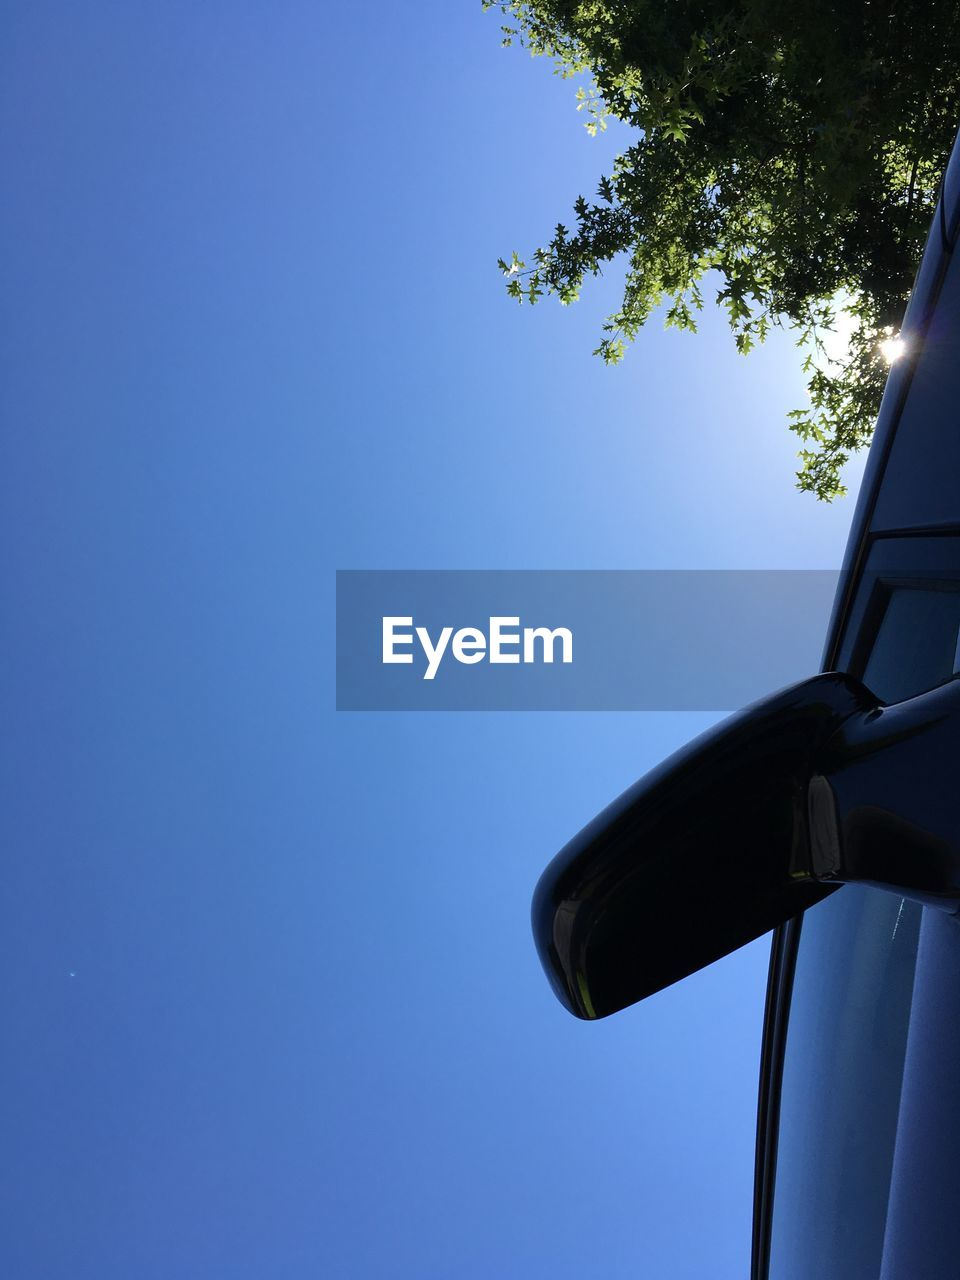 sky, blue, clear sky, low angle view, tree, nature, copy space, plant, no people, mode of transportation, day, transportation, sunlight, outdoors, land vehicle, air vehicle, motion, car, close-up, on the move